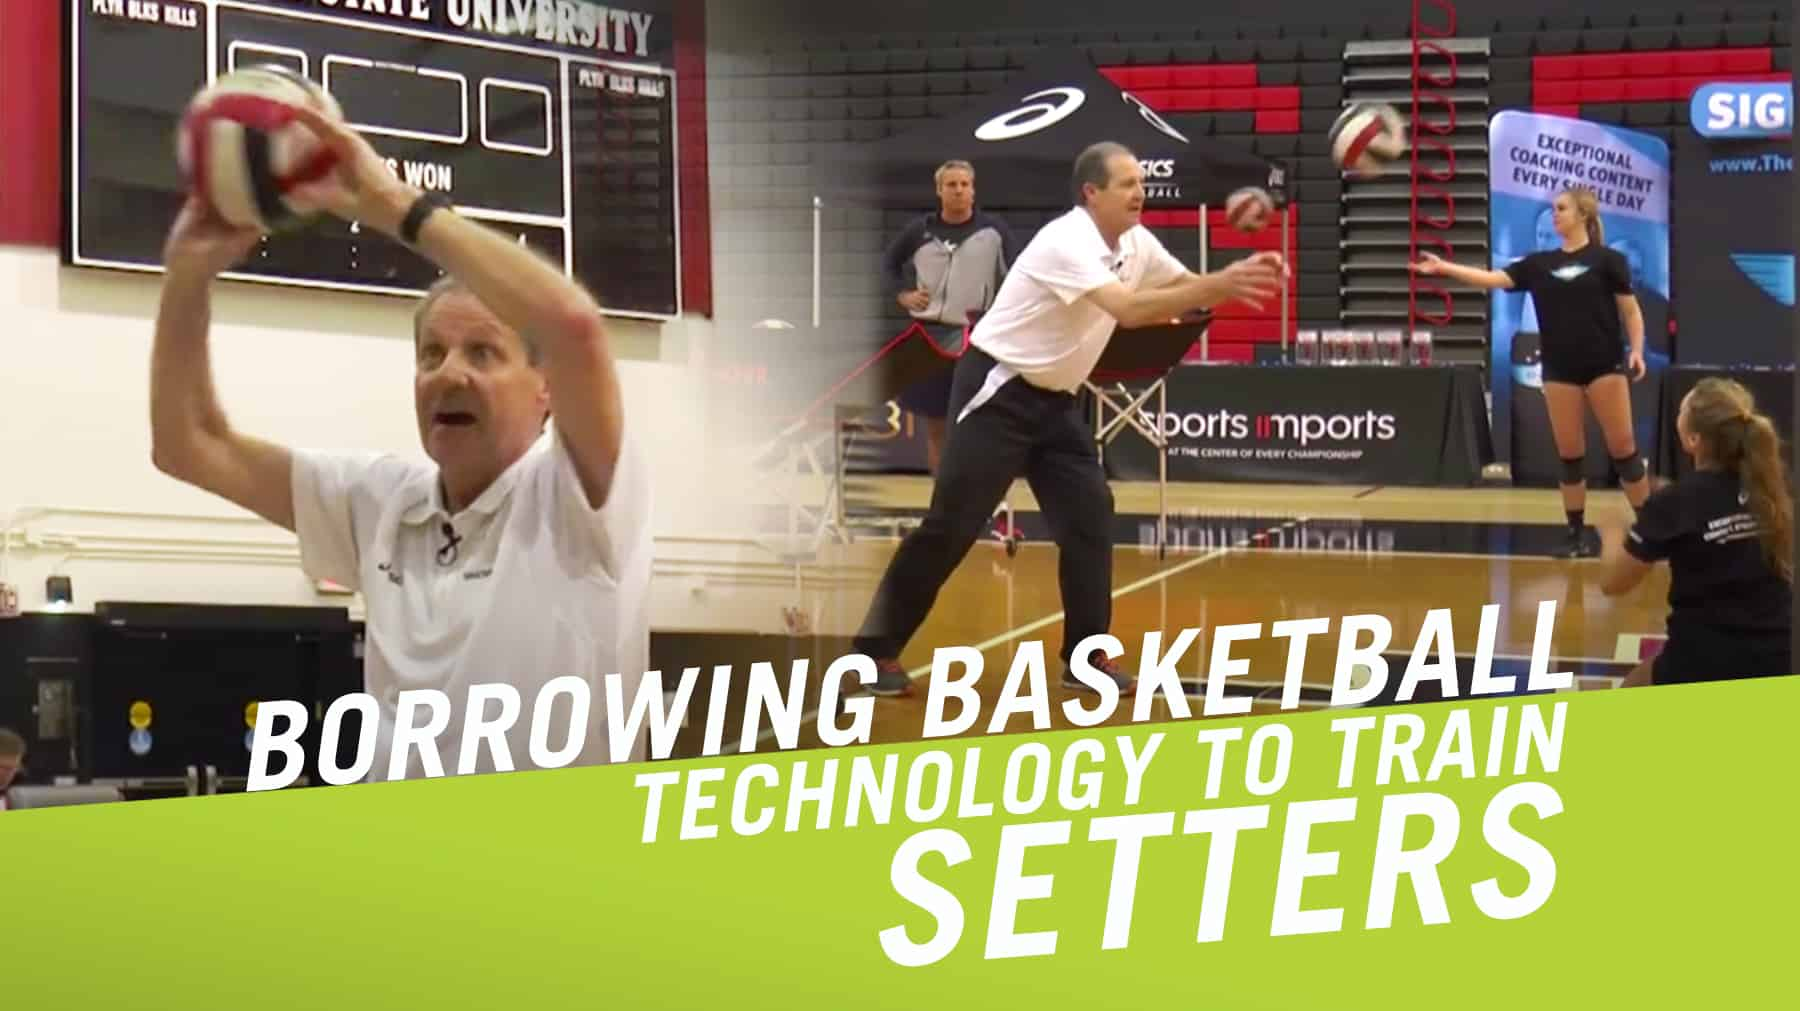 Borrowing Basketball Technology To Train Setters